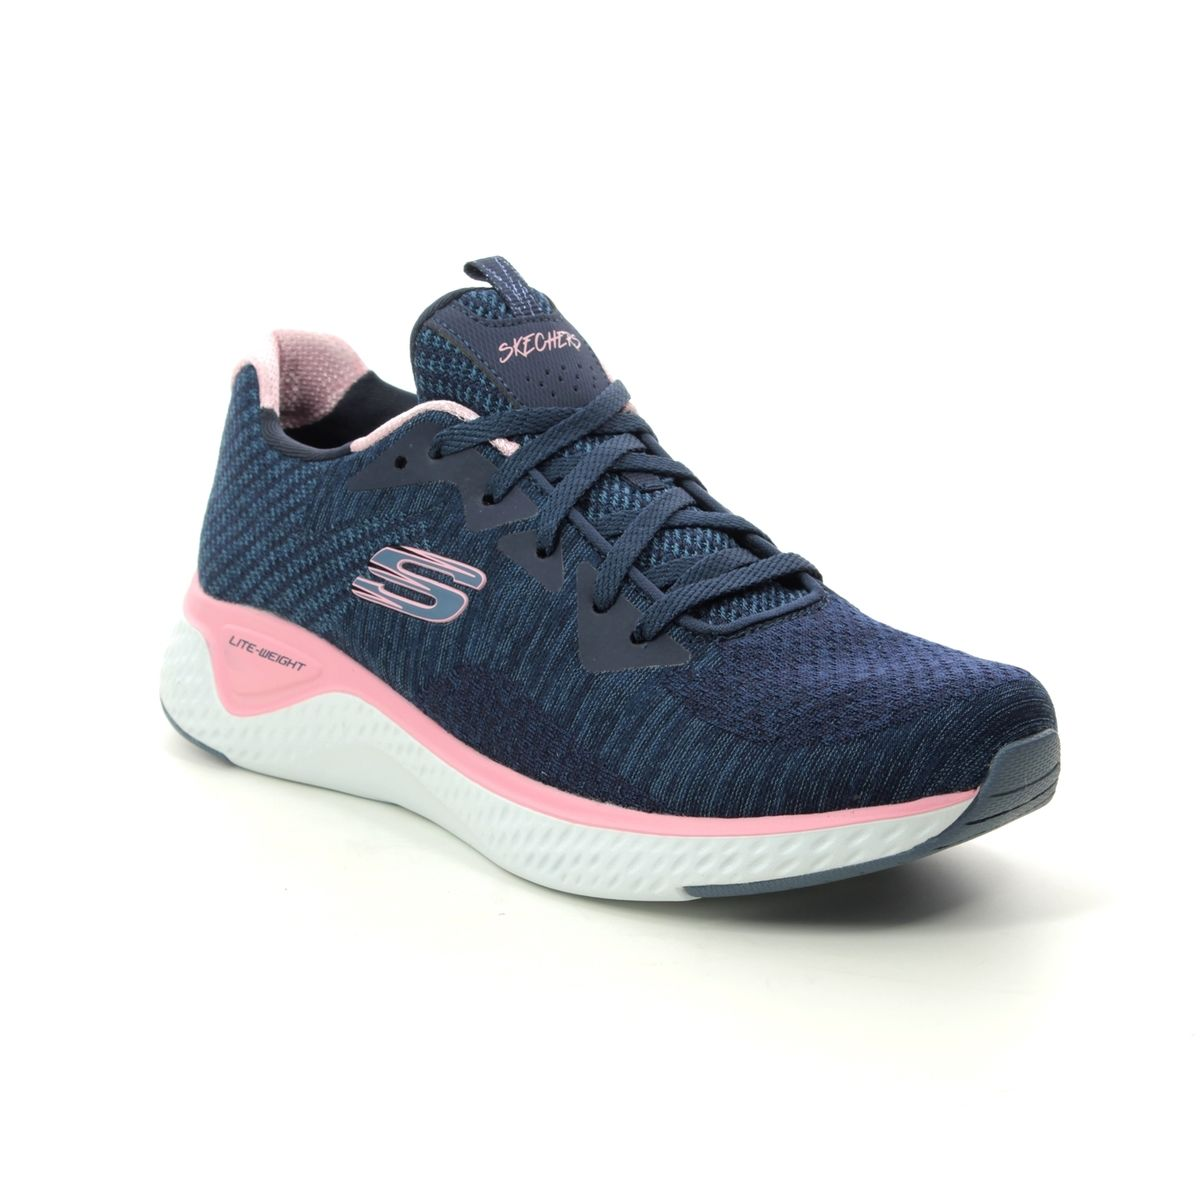 Skechers Ladies Trainers 13328 Grey